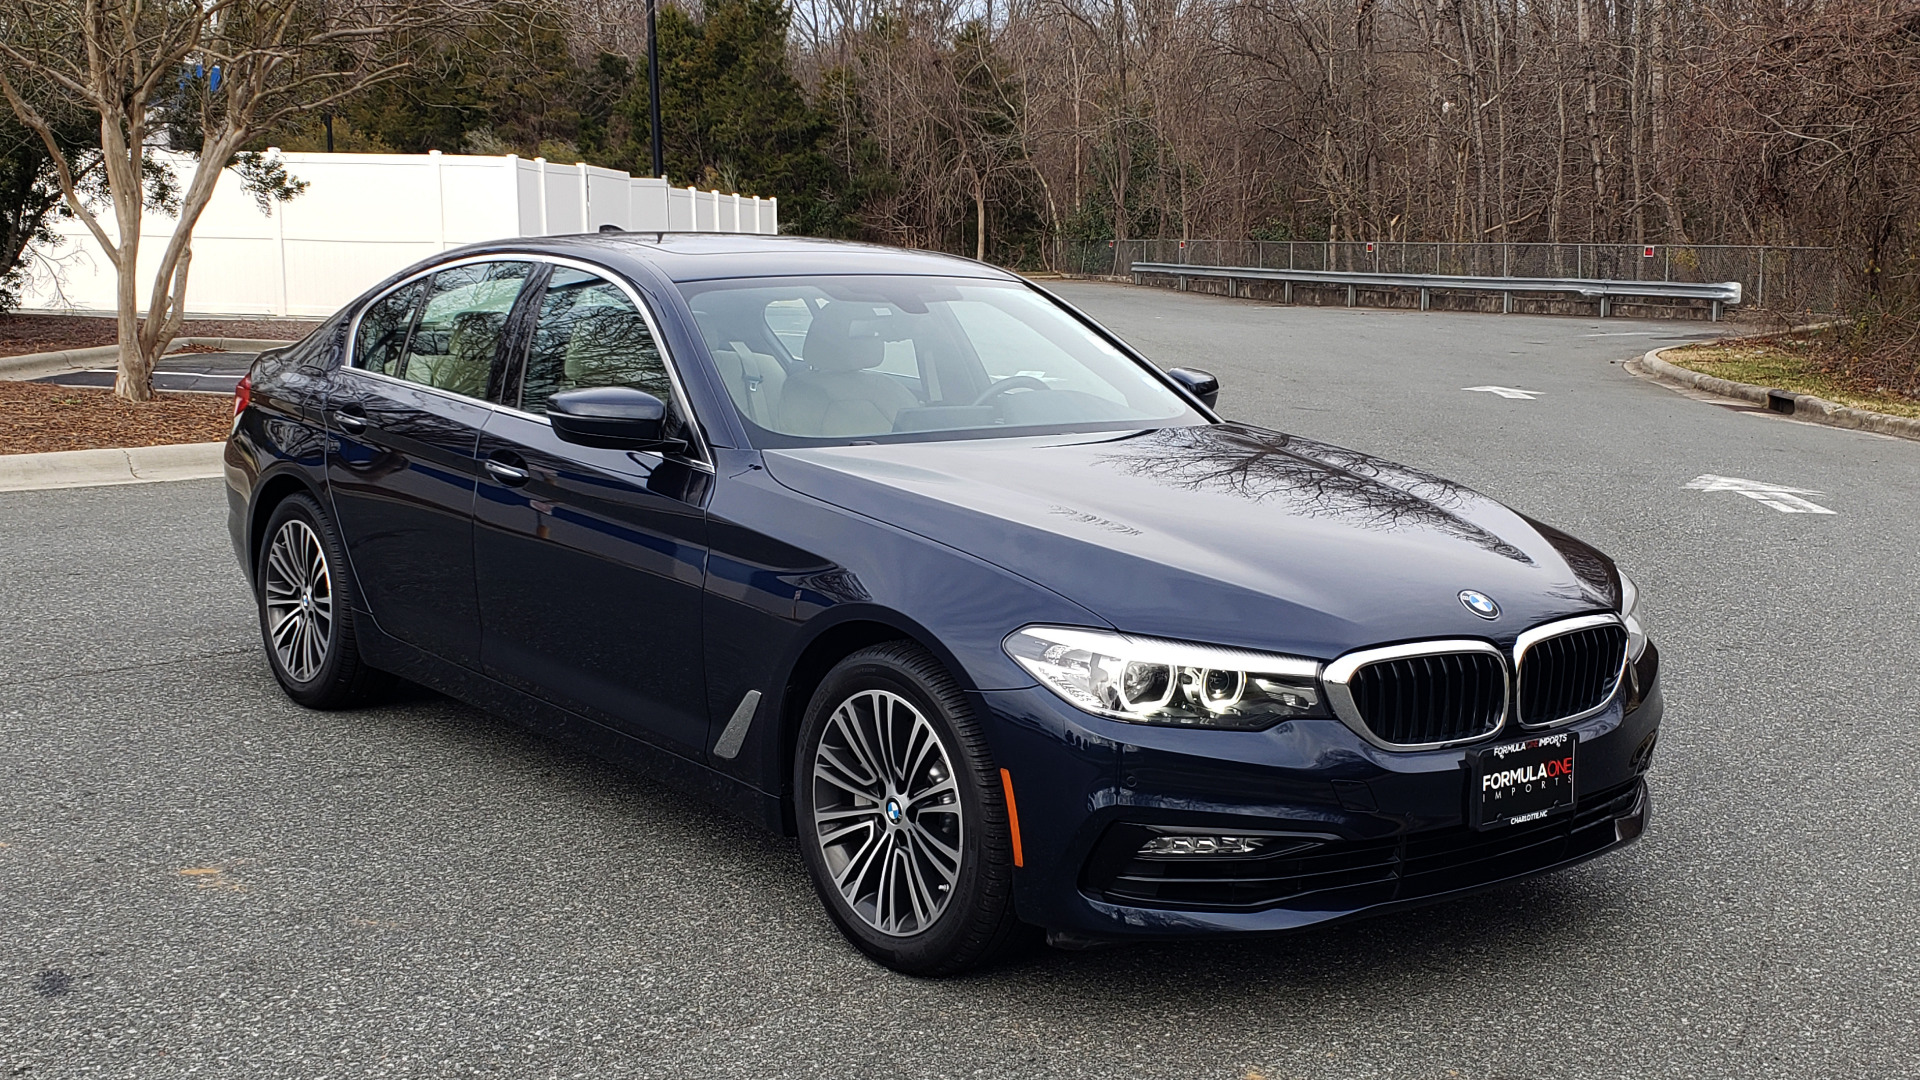 Used 2017 BMW 5 SERIES 530i XDRIVE / SPORTLINE / NAV / SNRF / HTD STS / REARVIEW for sale Sold at Formula Imports in Charlotte NC 28227 12